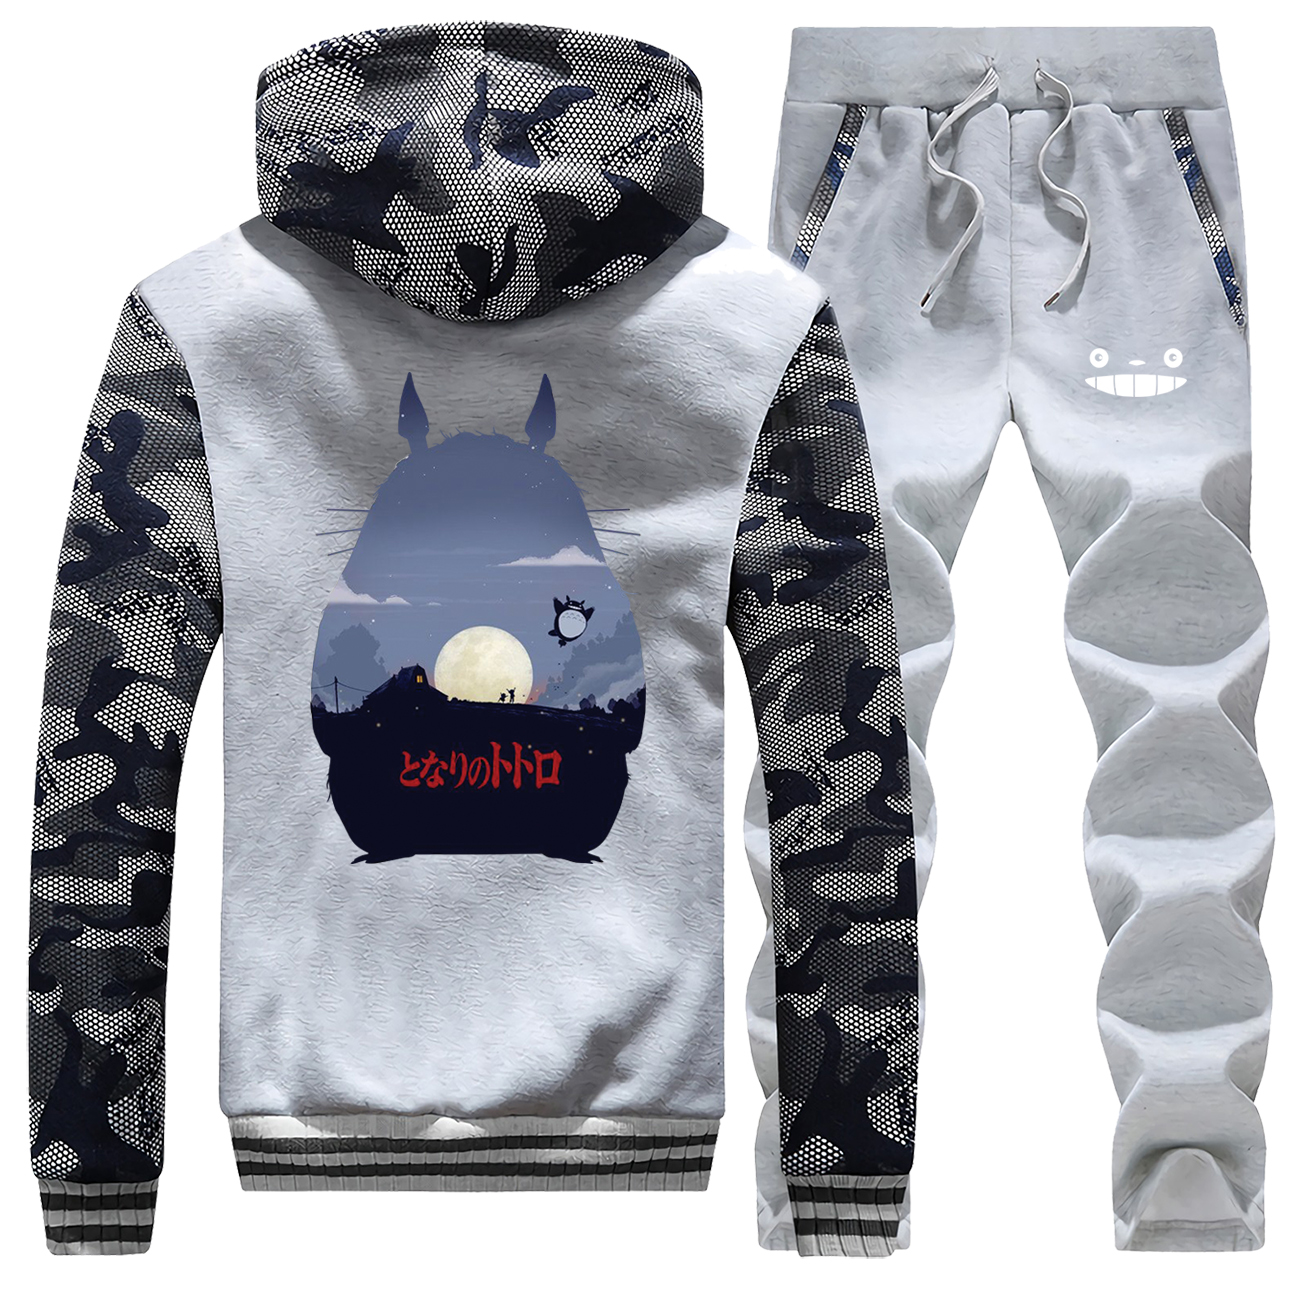 Tonari No Totoro Print Anime Tracksuit Thick Fleece Sweatshirts Mens Zip Jacket+Pants 2 Piece Sets Men Hoodies Winter Warm Suit